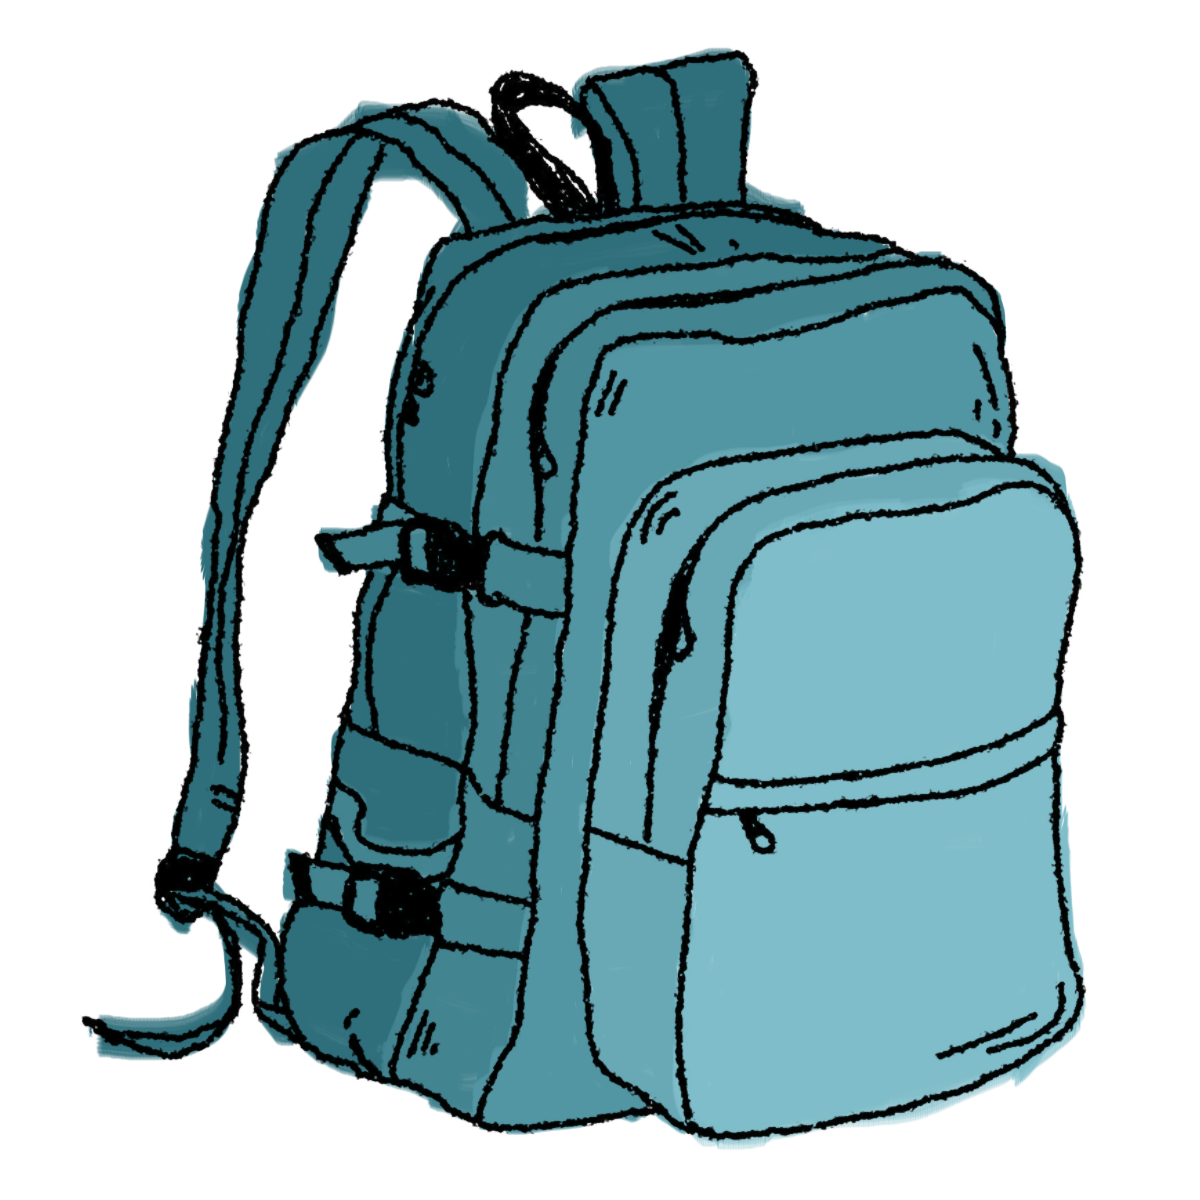 backpack clipart hand luggage